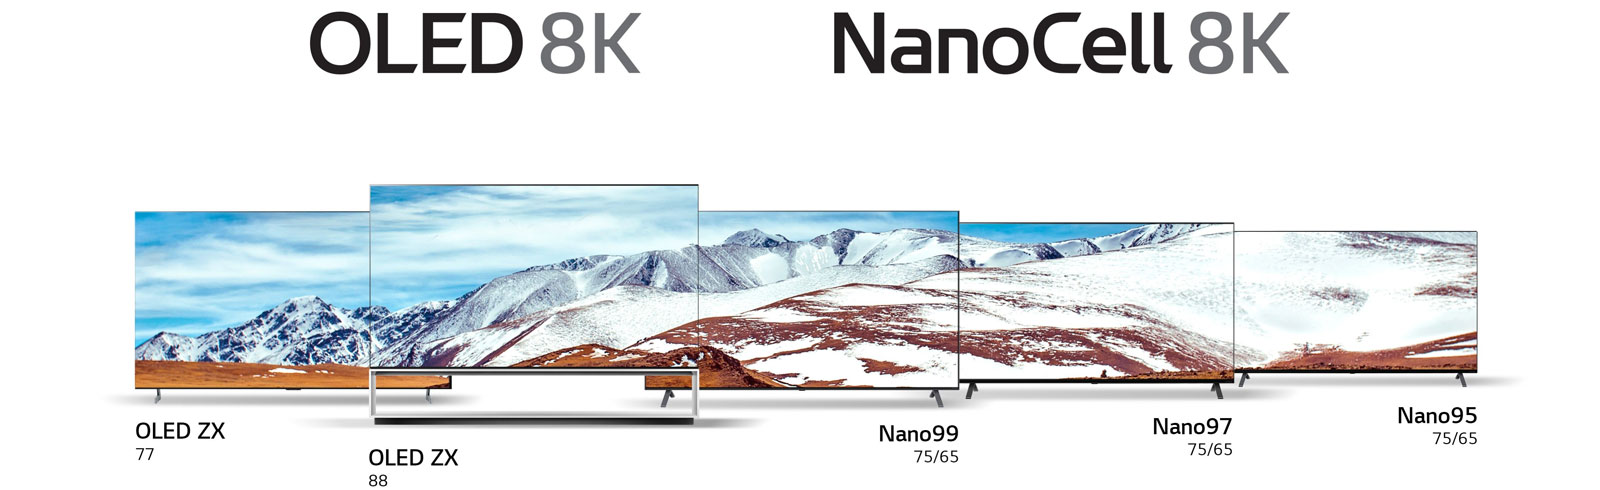 LG is expanding its 8K TV range - specifications, prices and availability